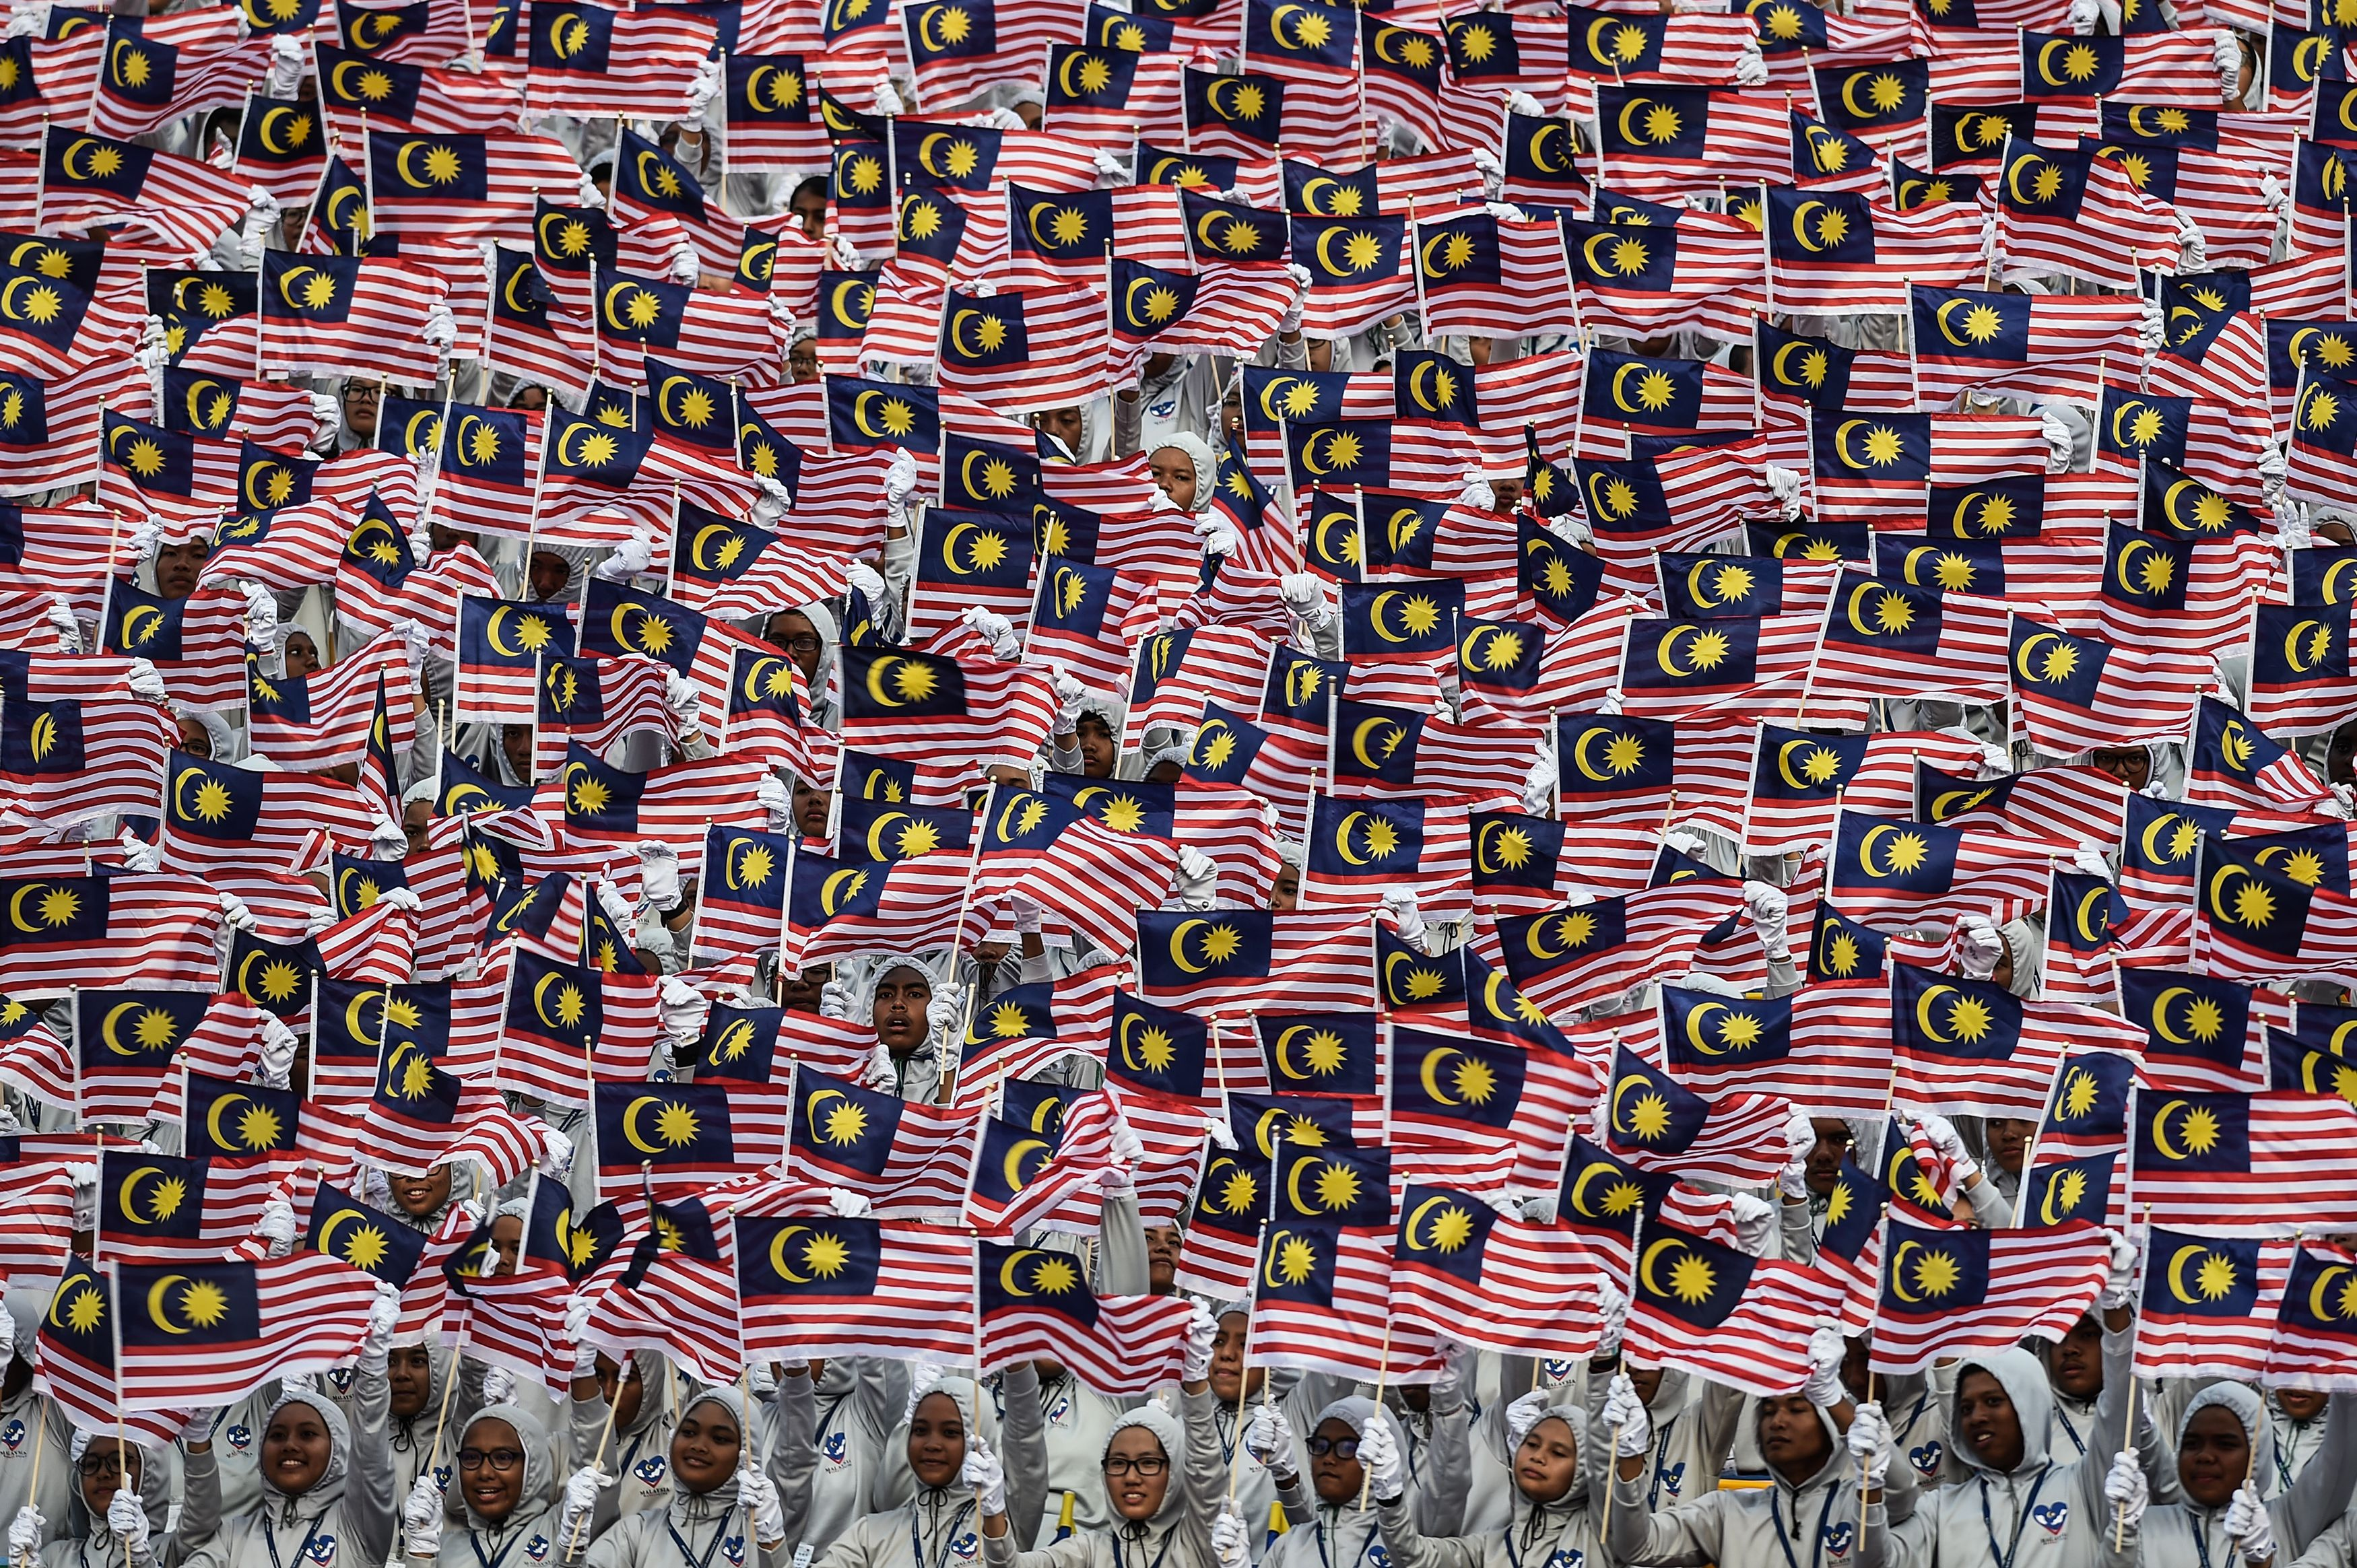 Malaysian schoolchildren wave national flags during the 59th National Day celebrations at Independence Square in Kuala Lumpur on August 31, 2016.